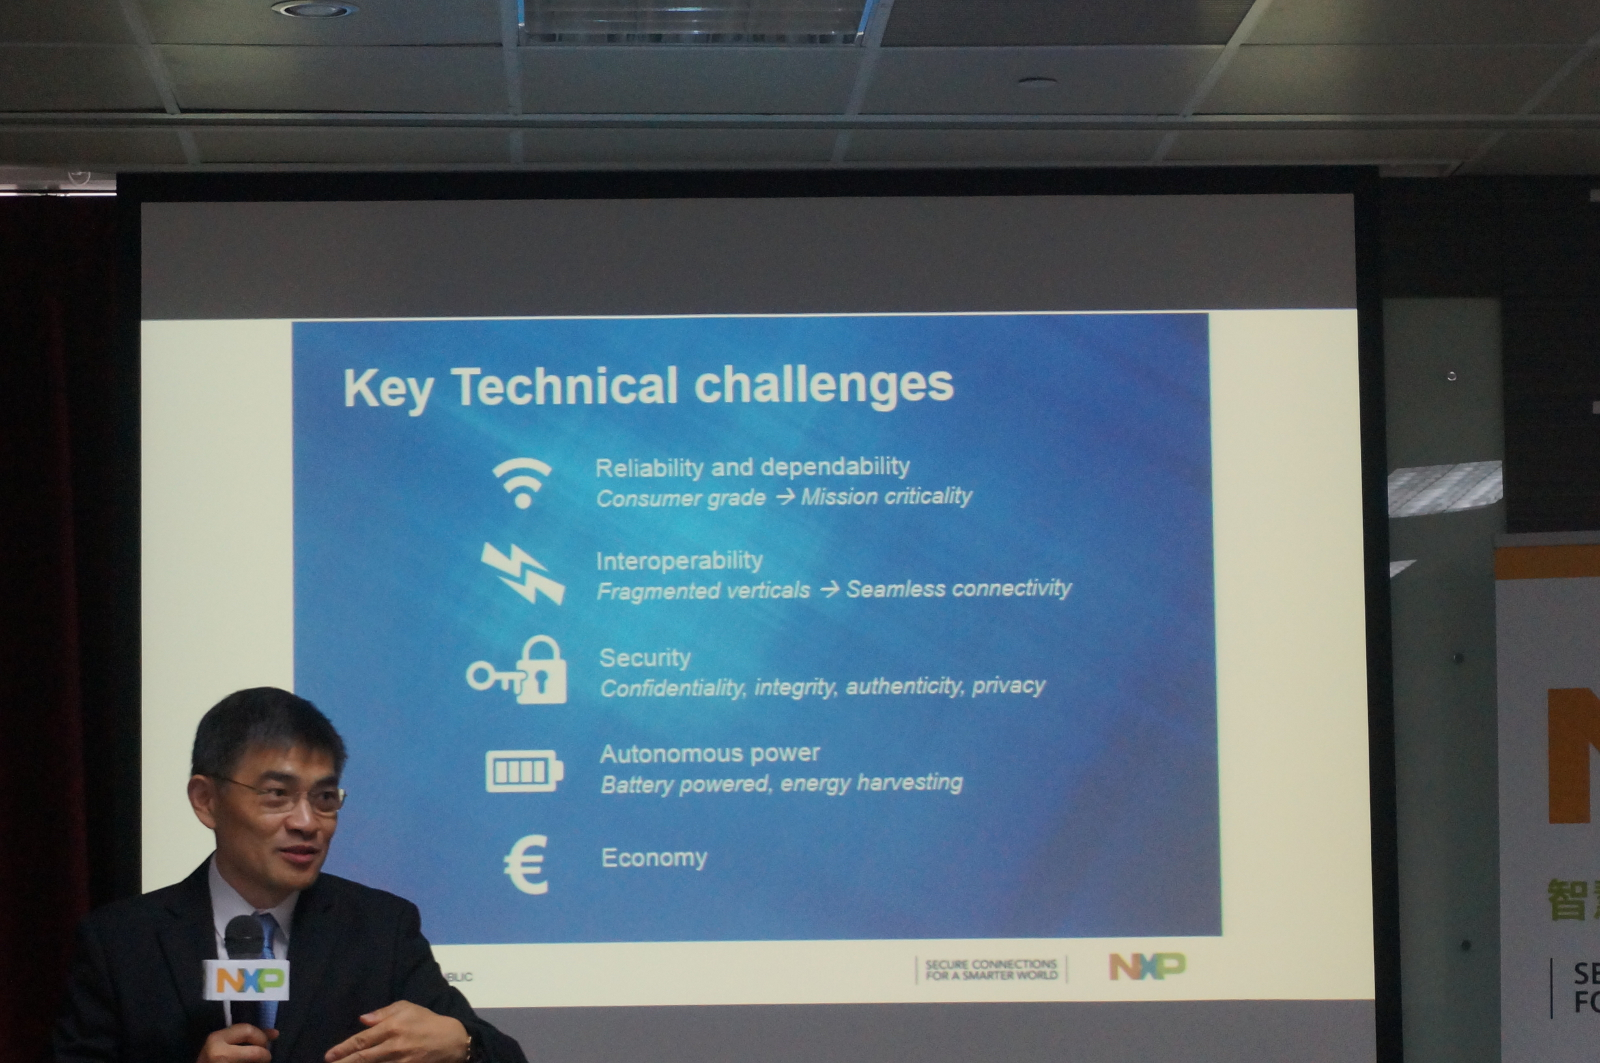 NPX-key-technocal-challenges-20150601